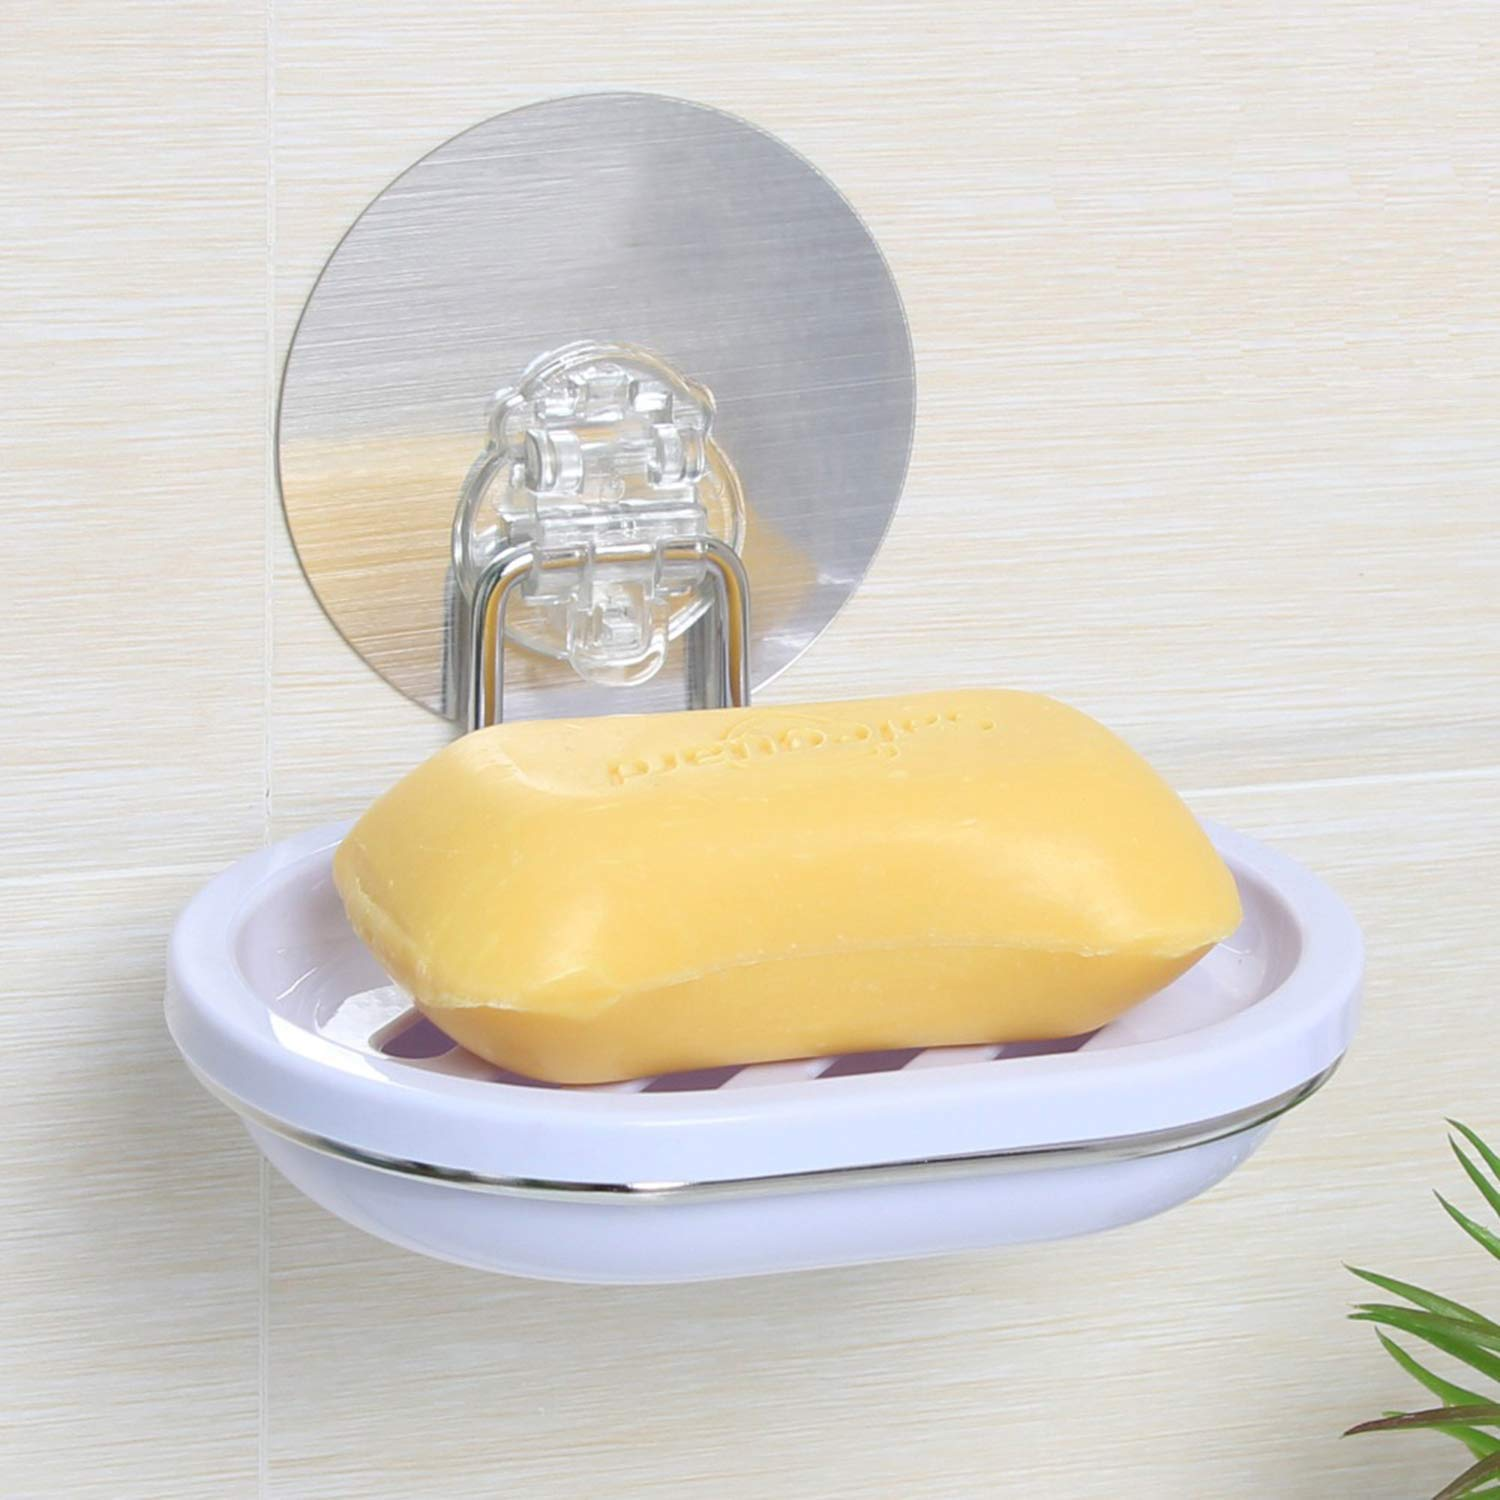 AND009467. Soap Cases with Drip Stop Tray